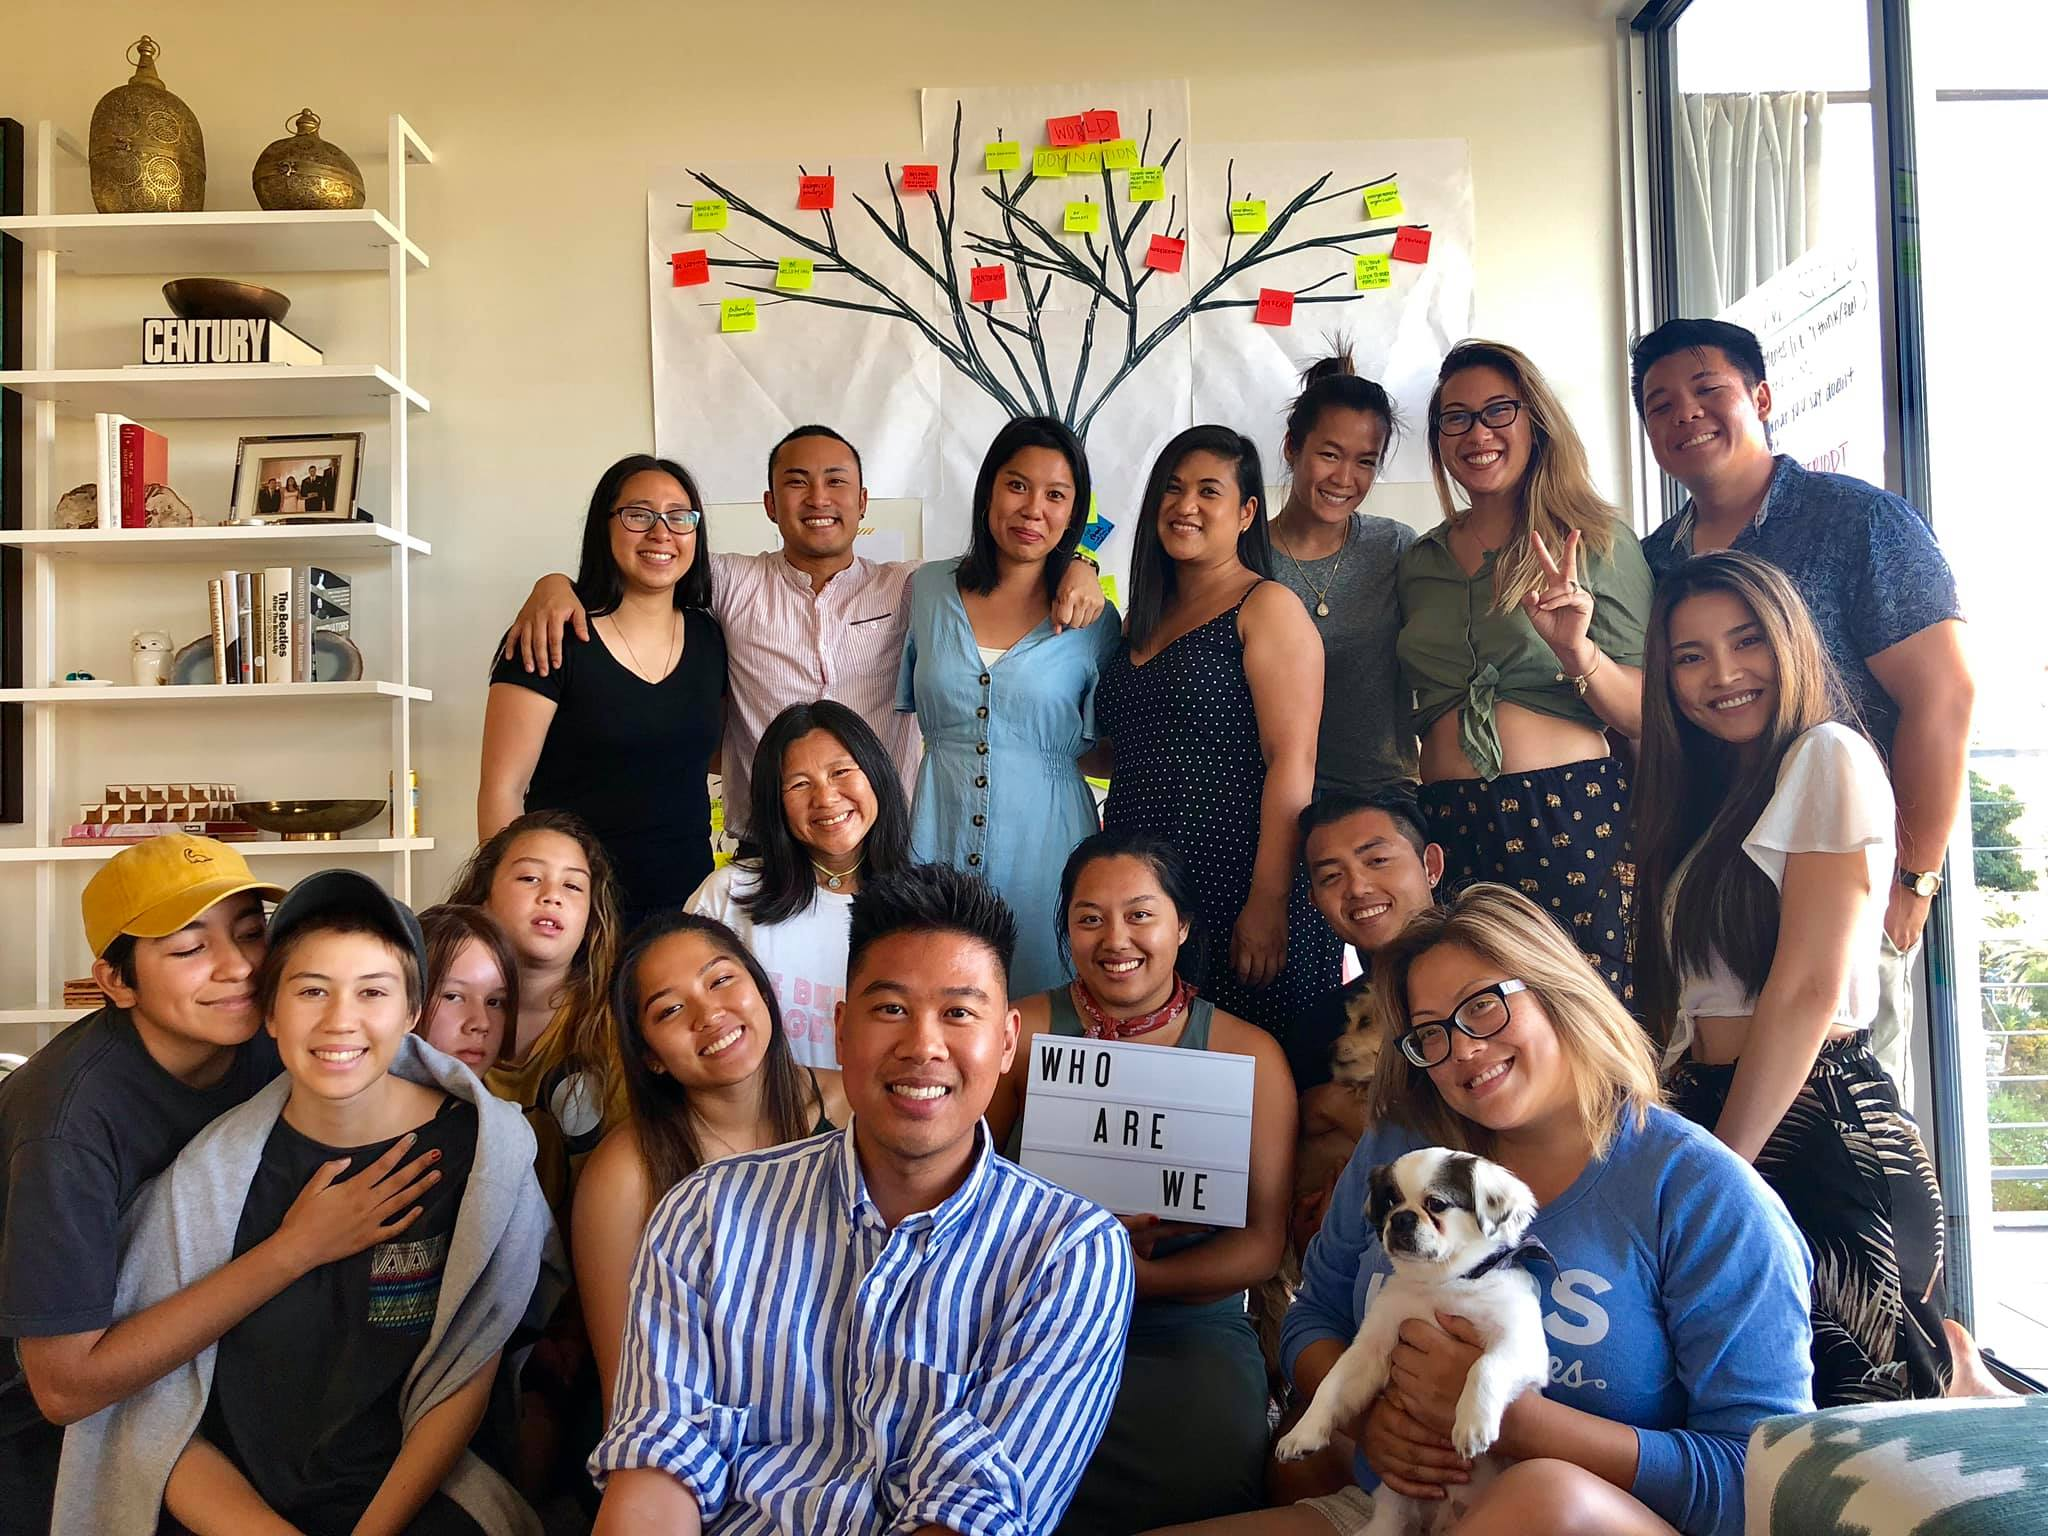 Laos Angeles: Who Are We? An Conversation on Identity